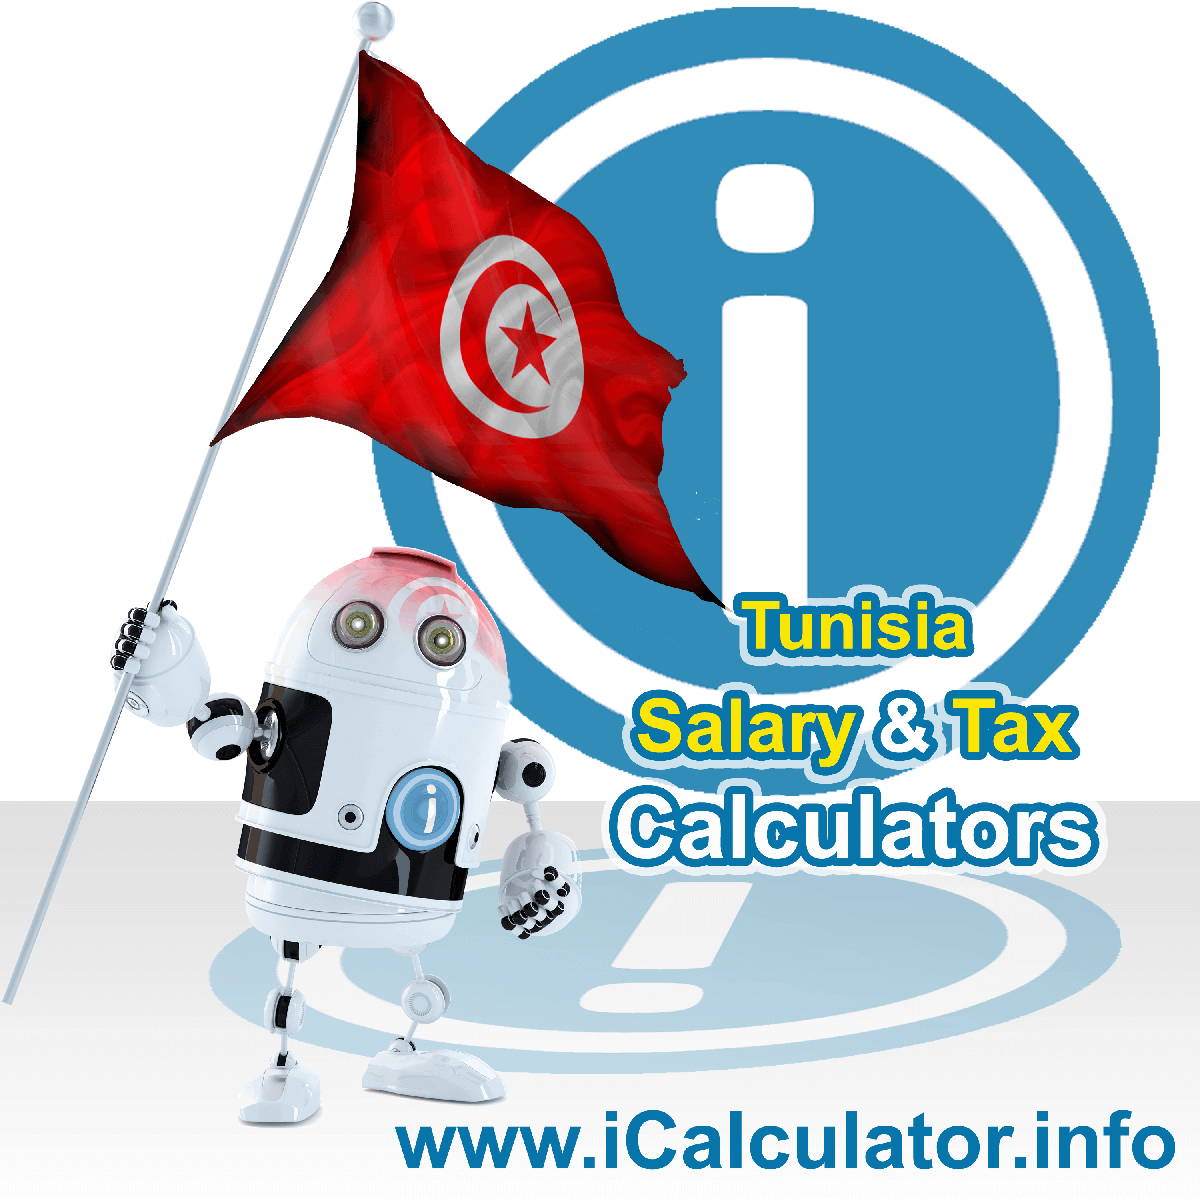 Tunisia Wage Calculator. This image shows the Tunisia flag and information relating to the tax formula for the Tunisia Tax Calculator